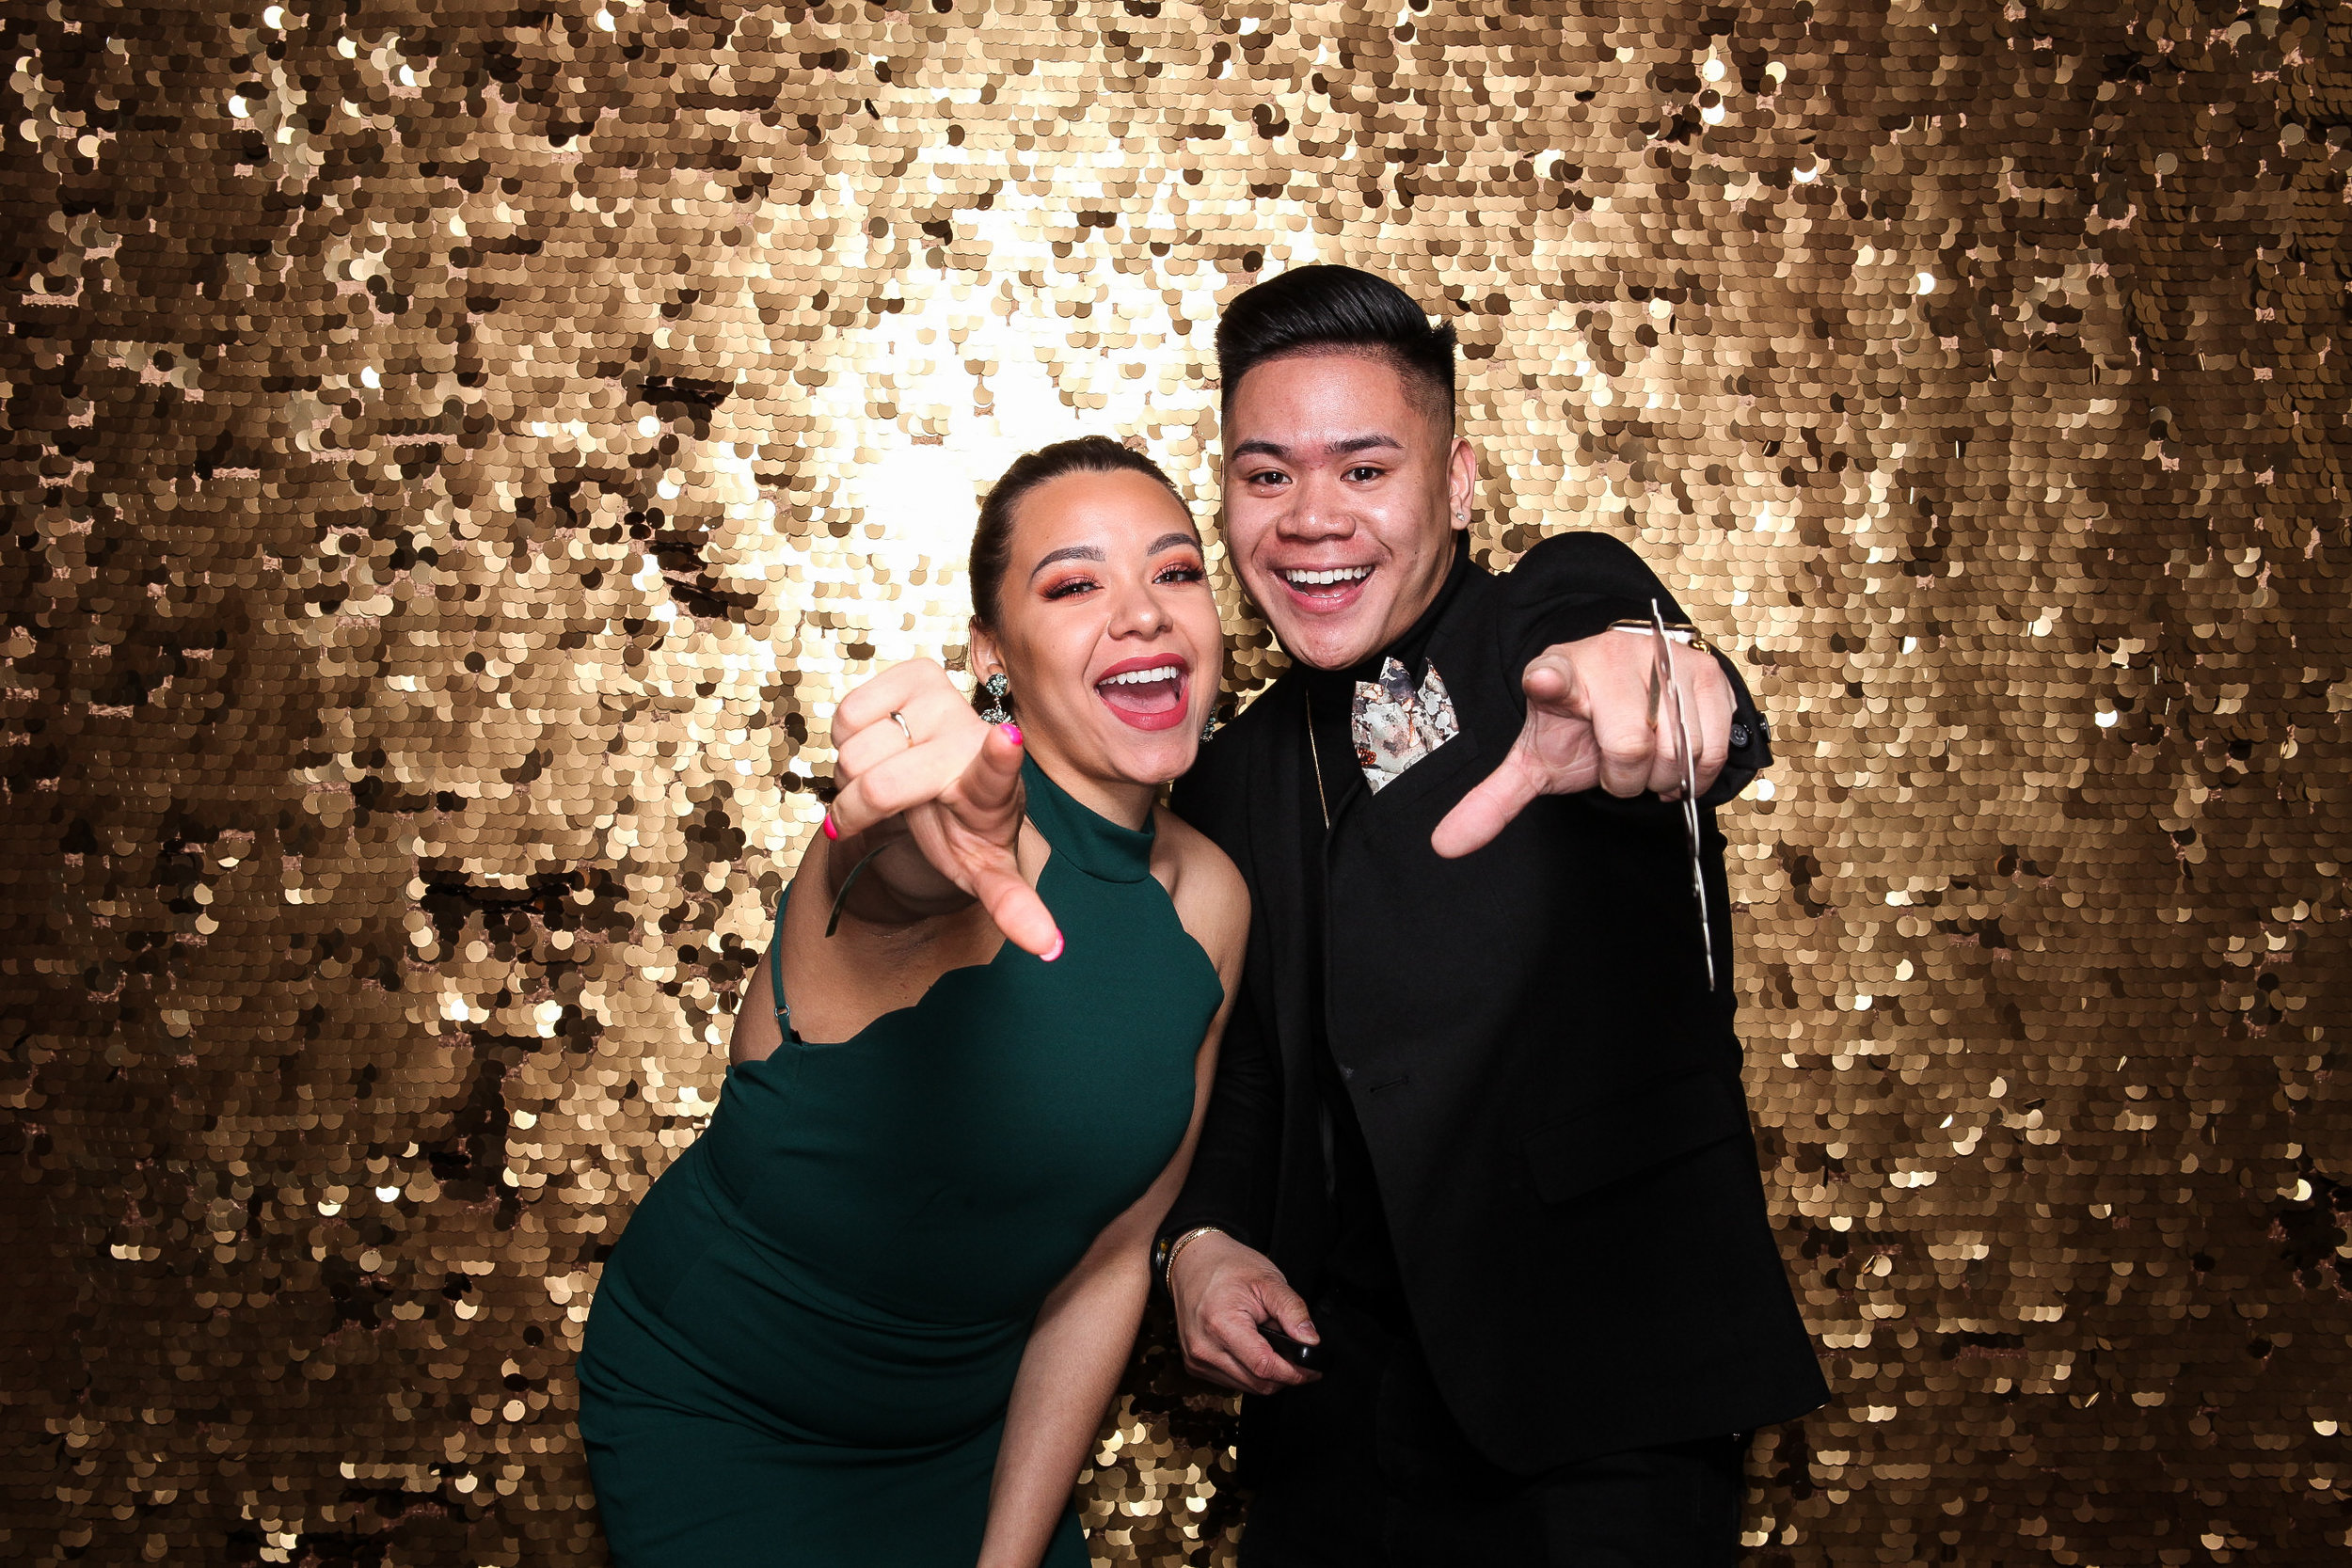 20190503_Adelphi_Senior_Formal-145.jpg